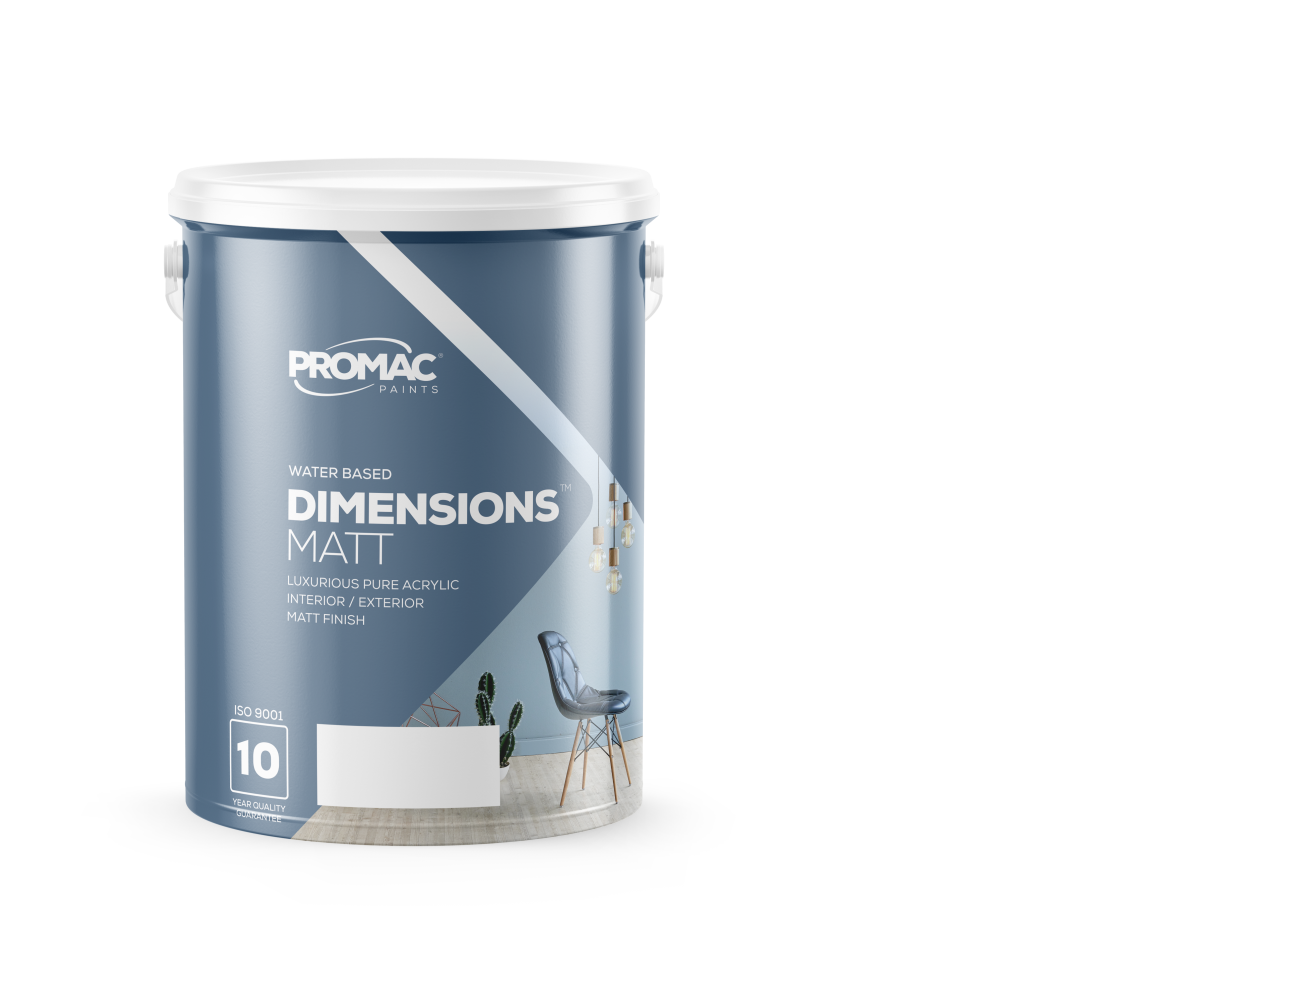 DIMENSIONSMATT - WATER BASEDPromac Dimensions™ Matt is a water-based, pure acrylic, with a high-quality matt finish and excellent washability making it suitable for high traffic interior and exterior areas. It has excellent adhesive properties and is stain and water resistant.